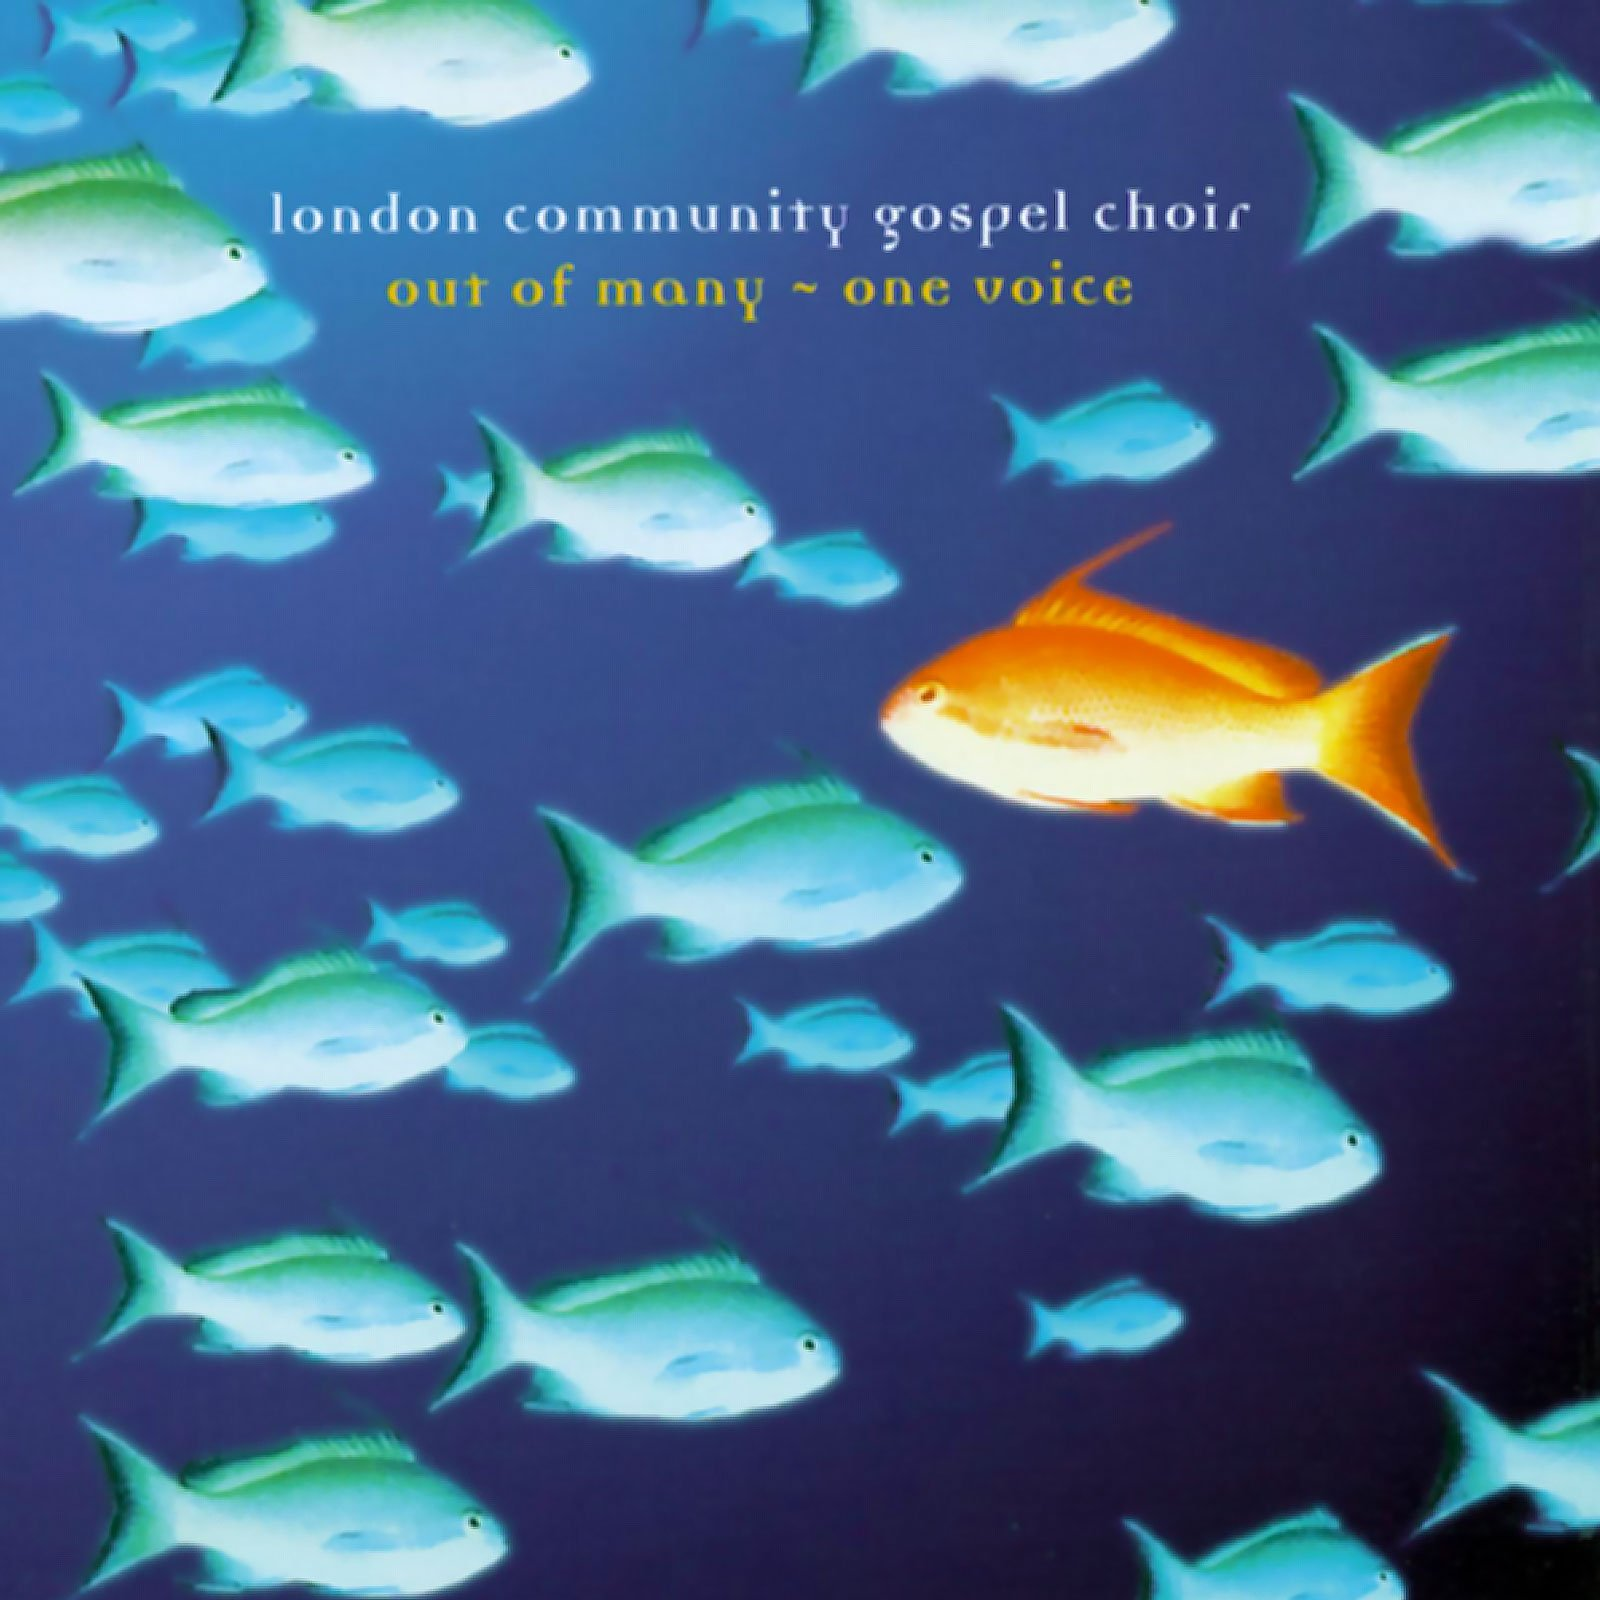 LCGC_Out_Of_Many_One_Voice_Cover_1600x1600